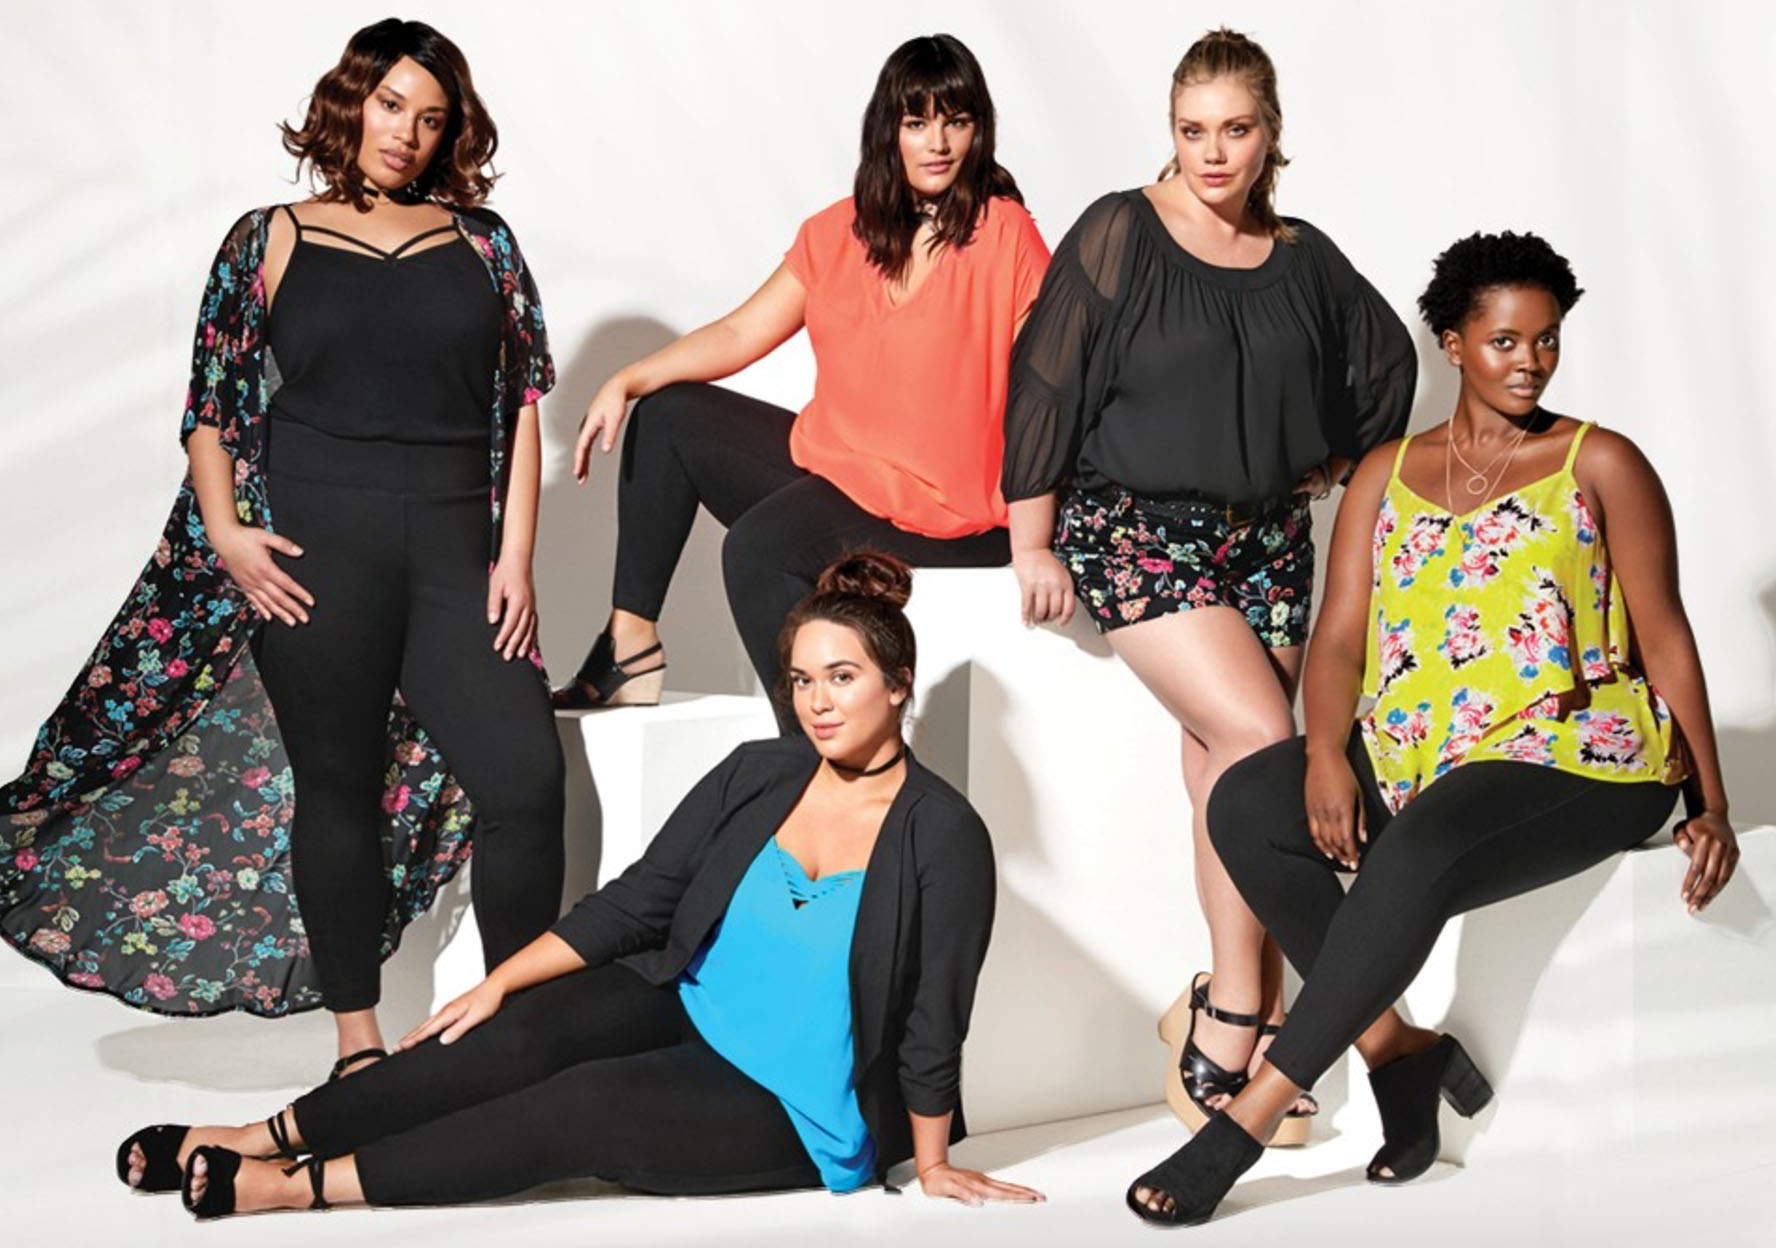 22d890d2f1a Finally! 37 Plus-Size Fashion Sites That Don t Suck - theFashionSpot